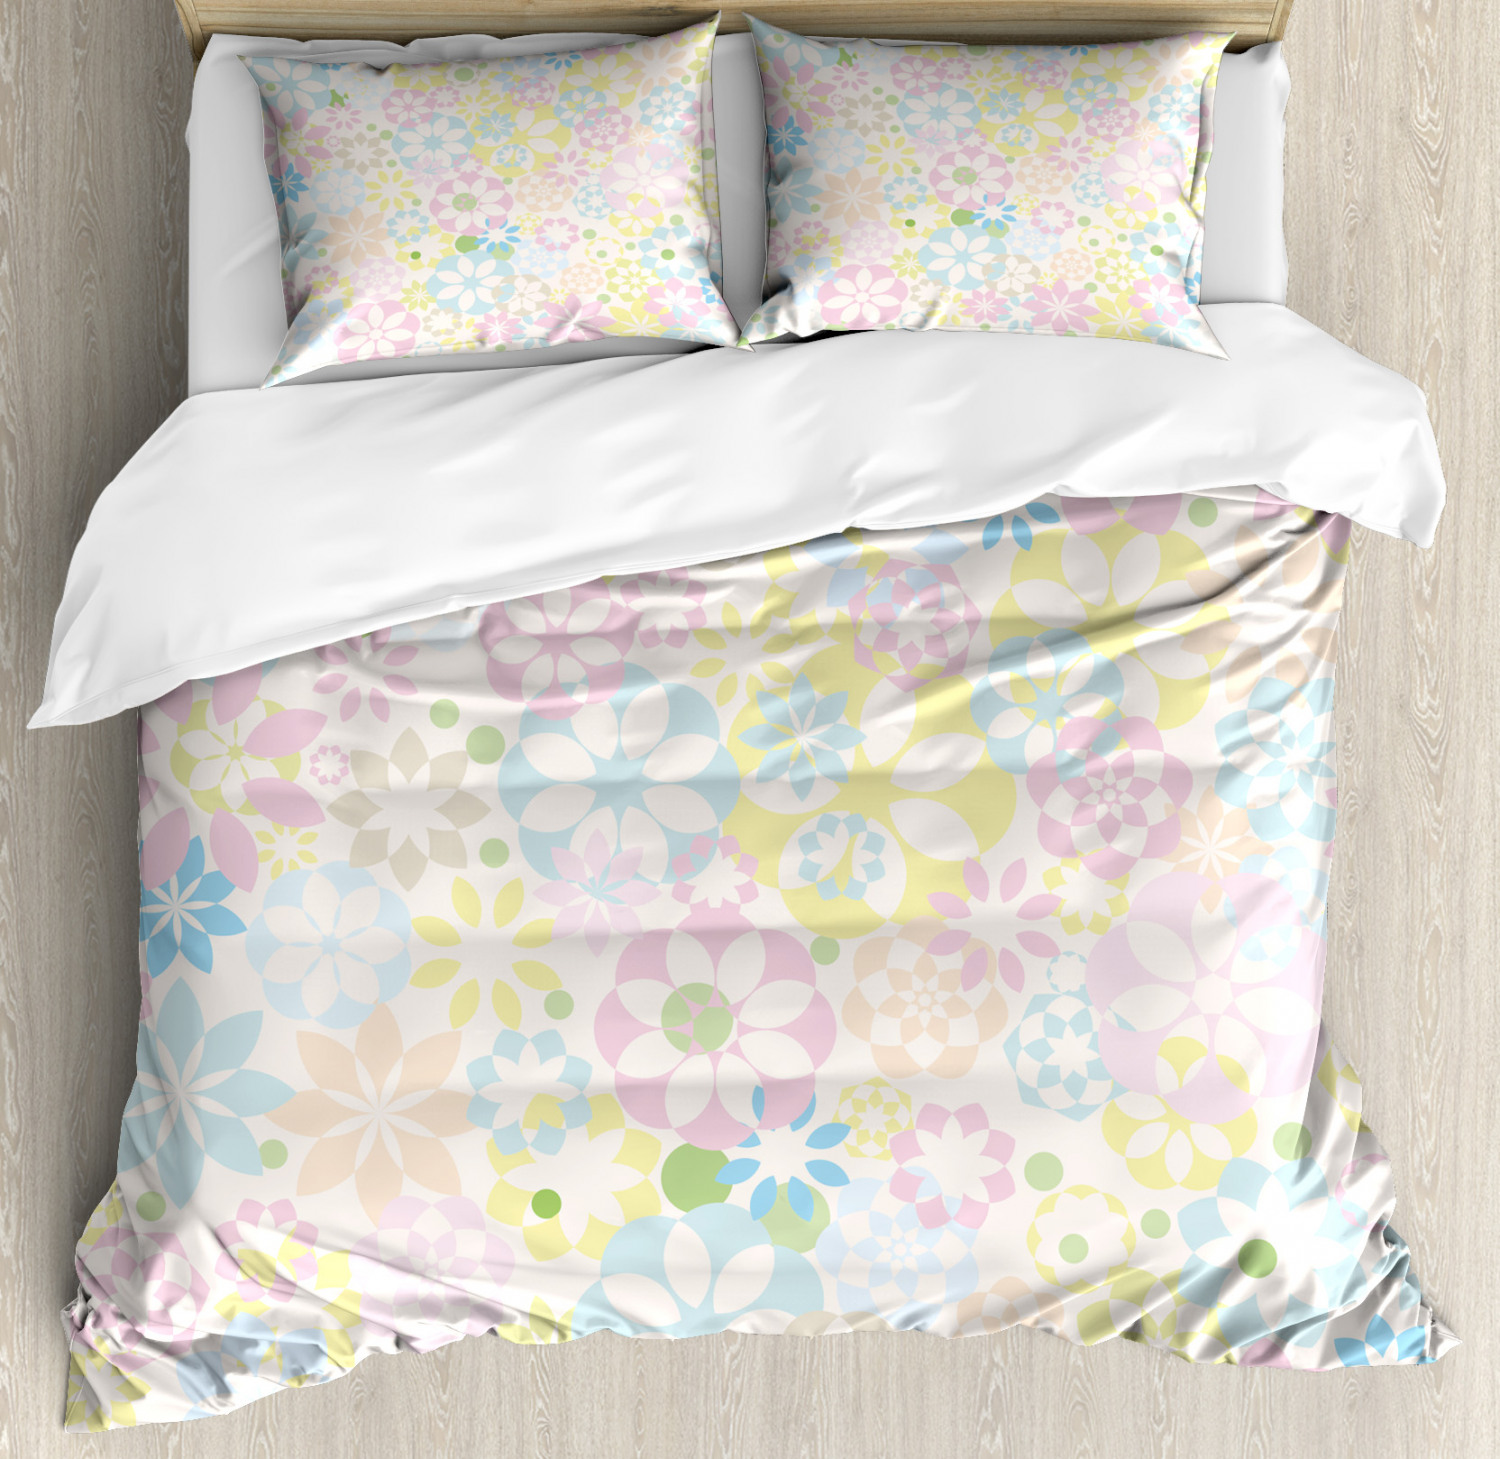 Pastel Duvet Cover Set with Pillow Shams Blooming Flowers Spring Print